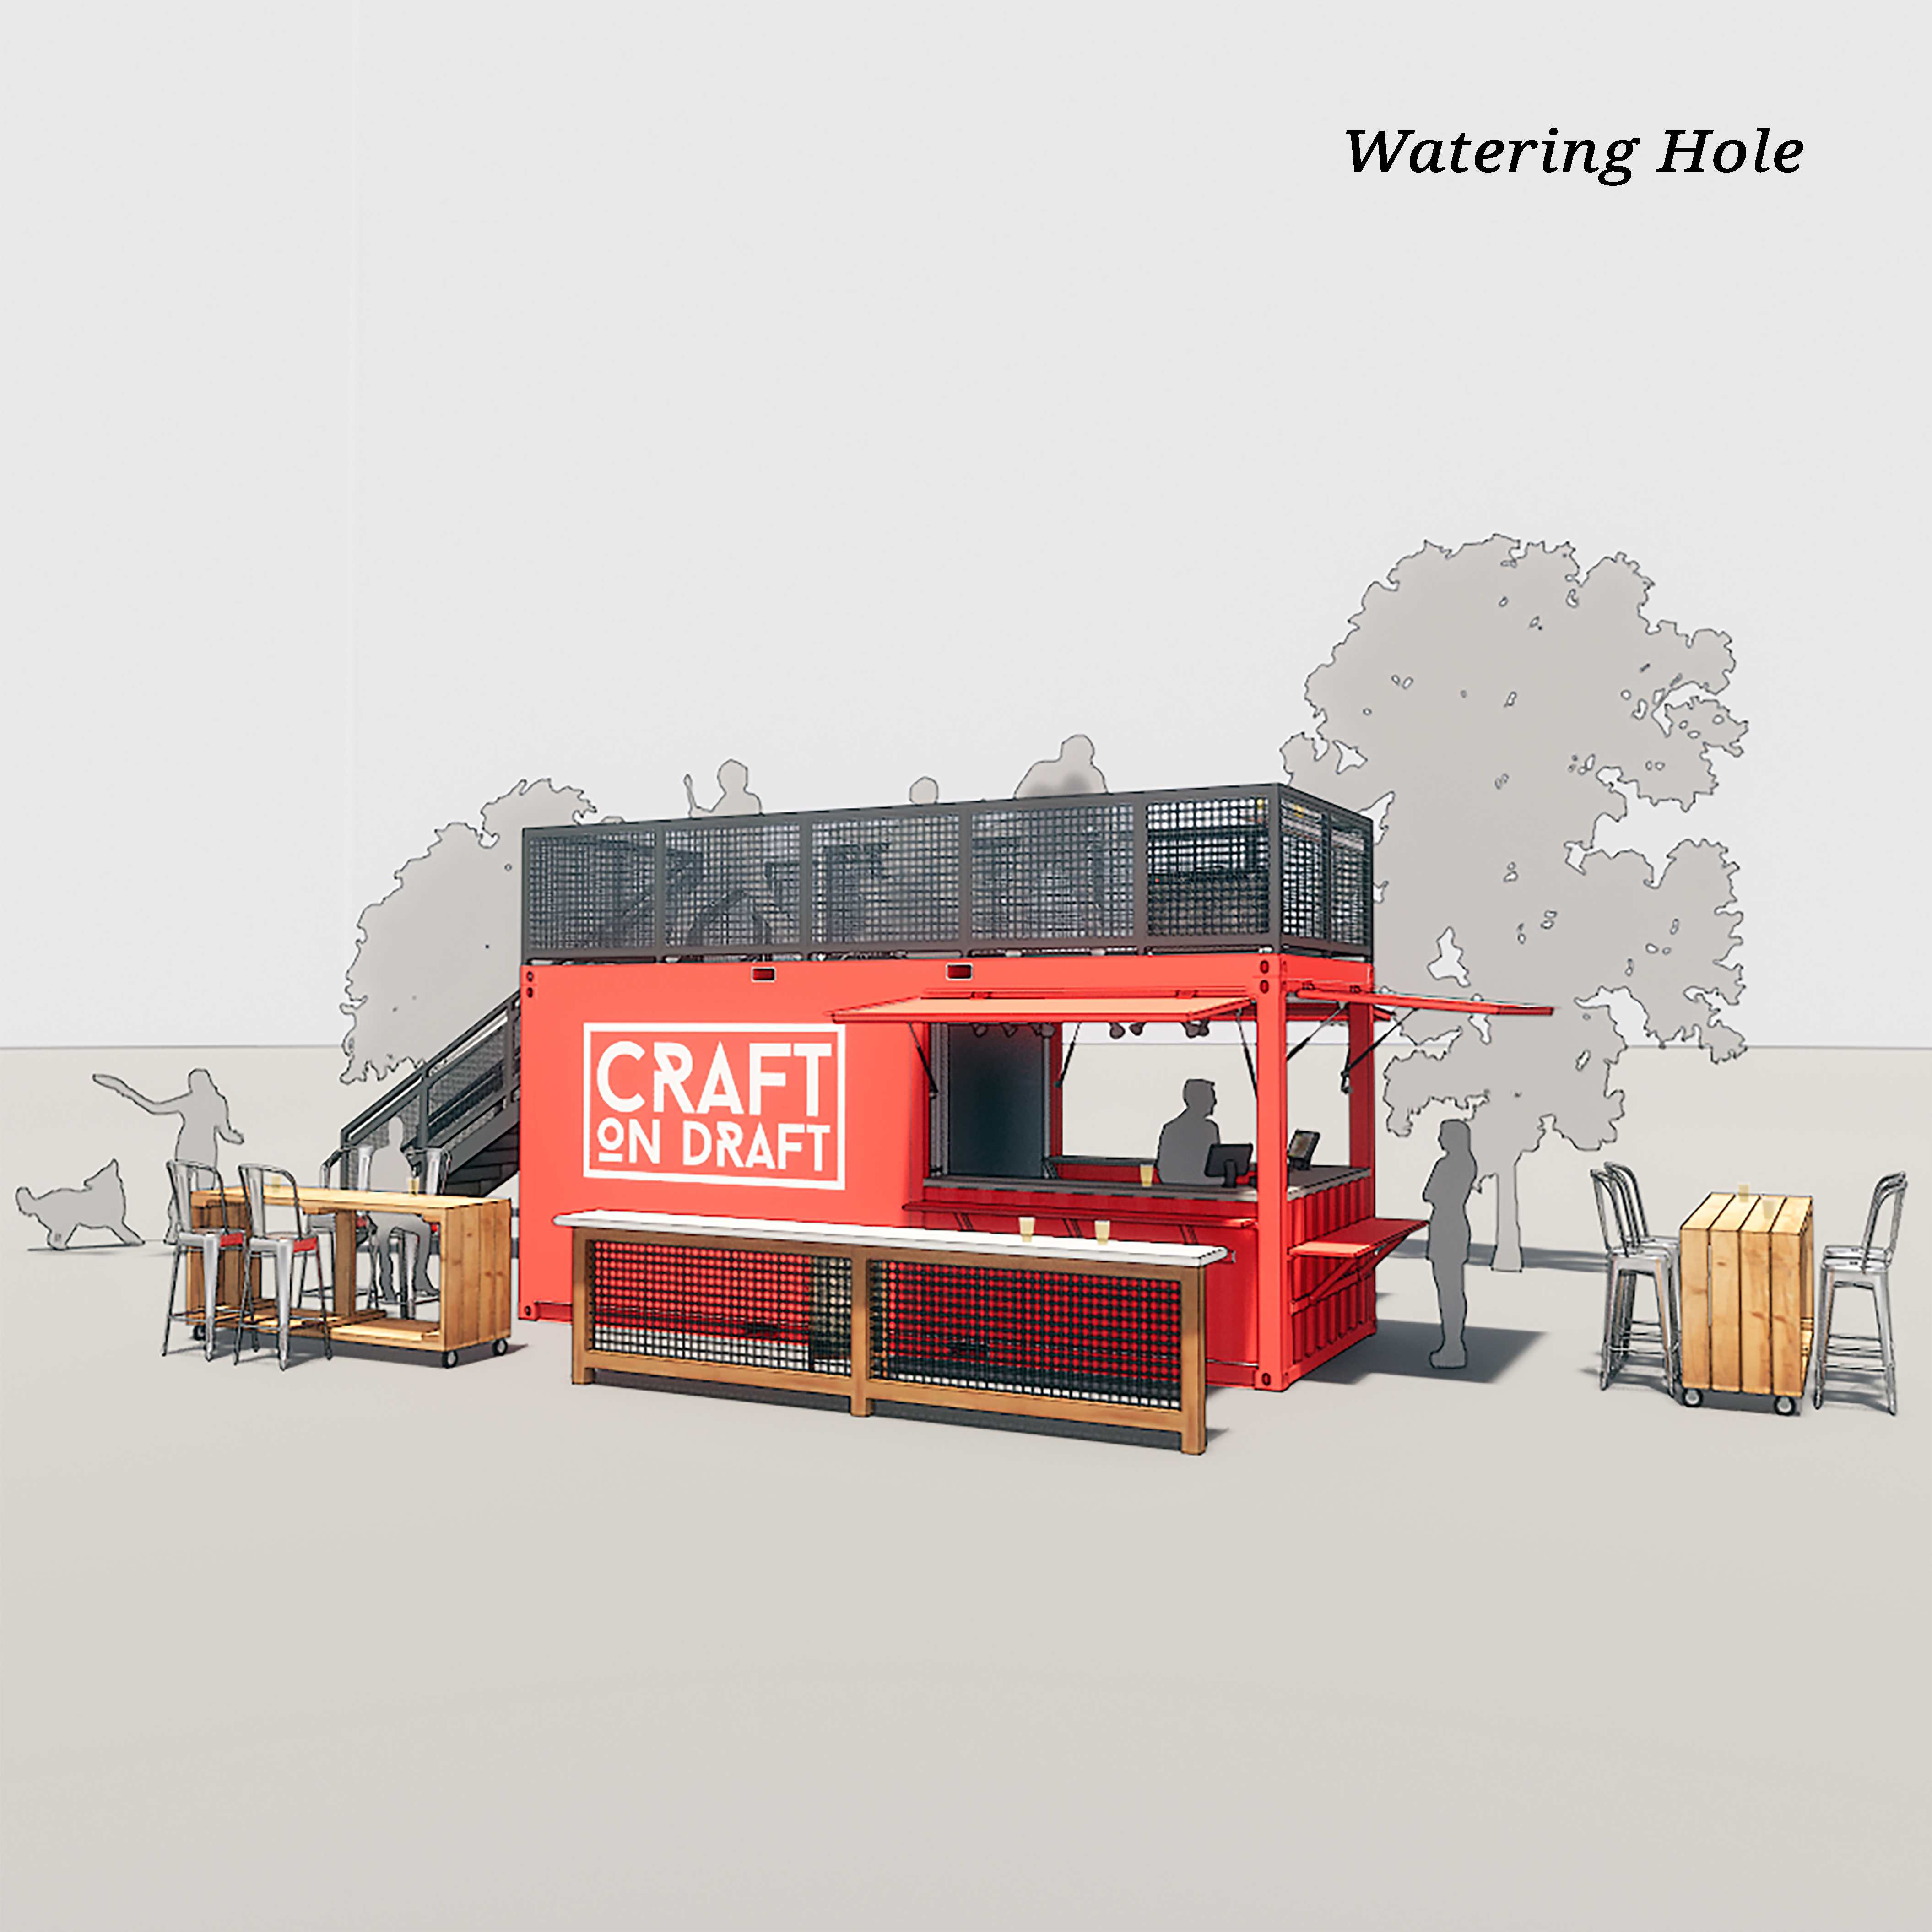 New-Watering-Hole-r0.png